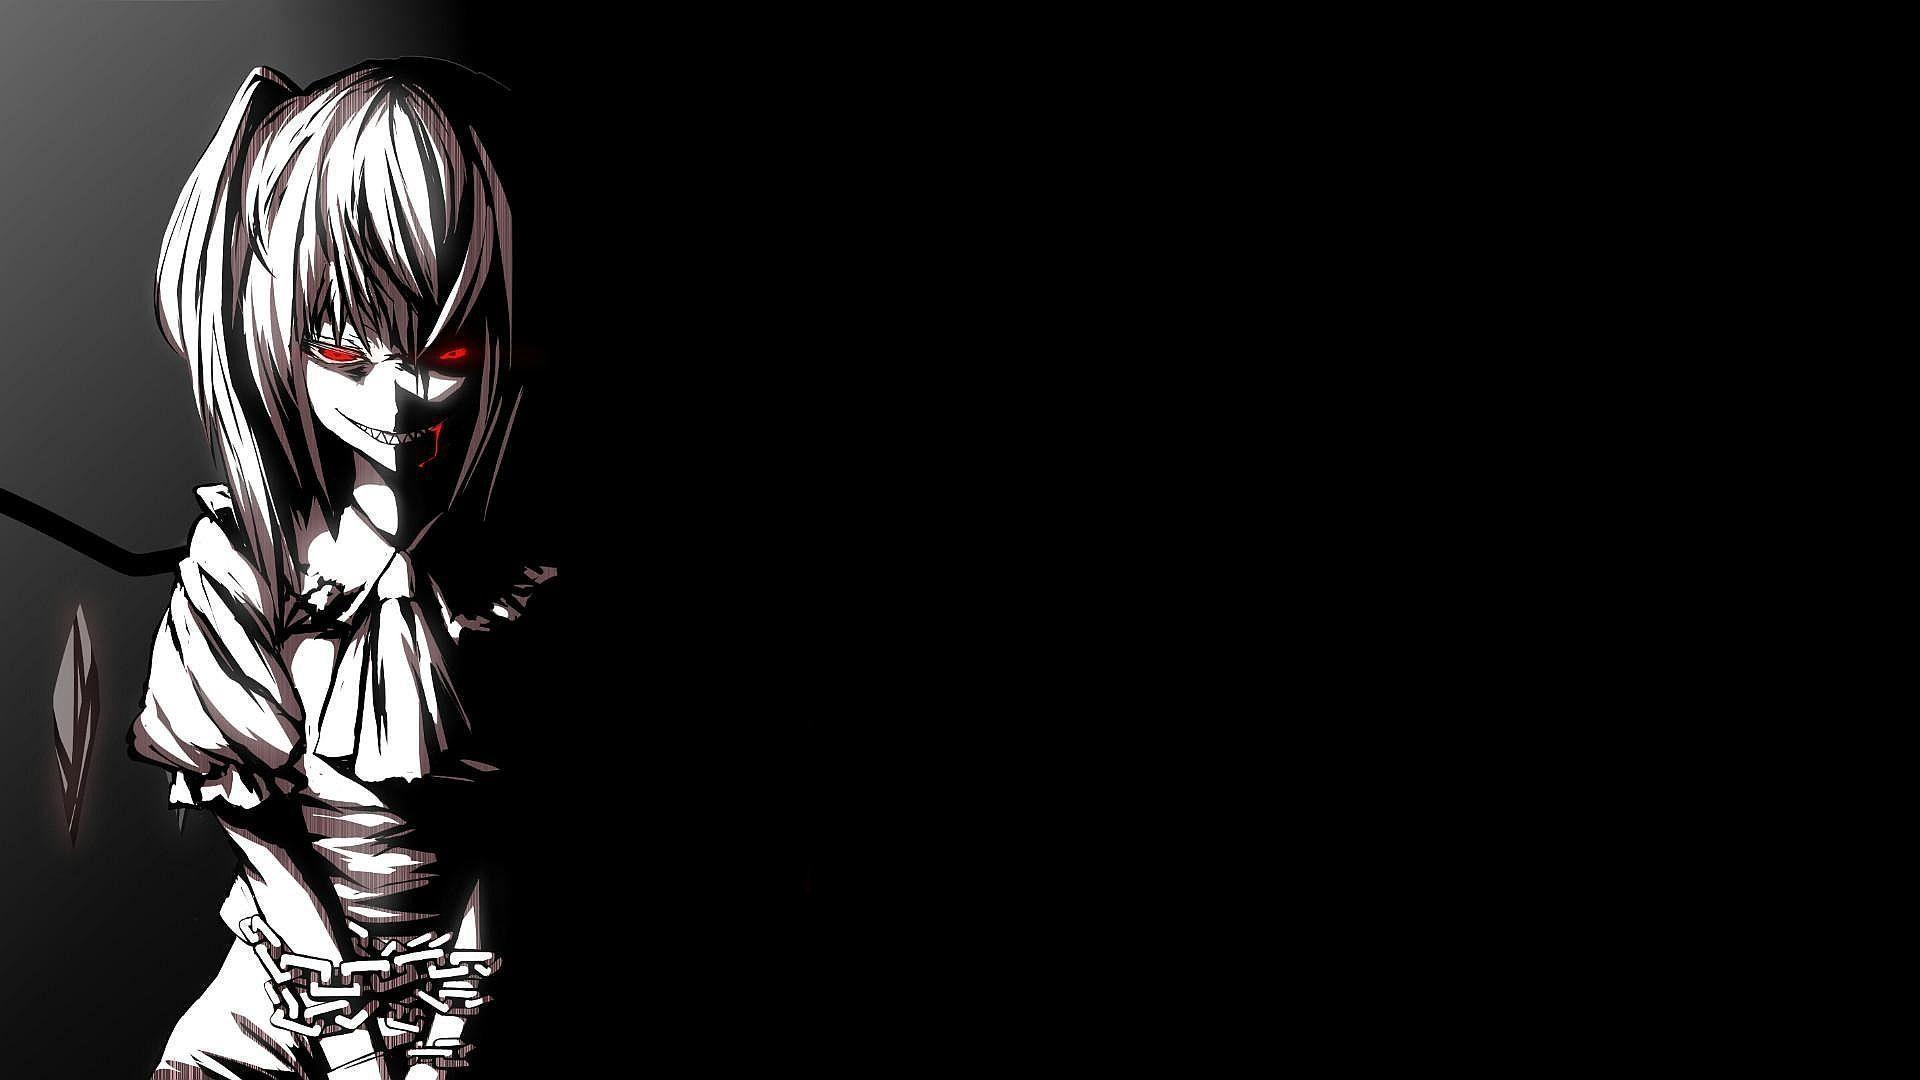 Black Anime Hd Wallpapers Wallpaper Cave